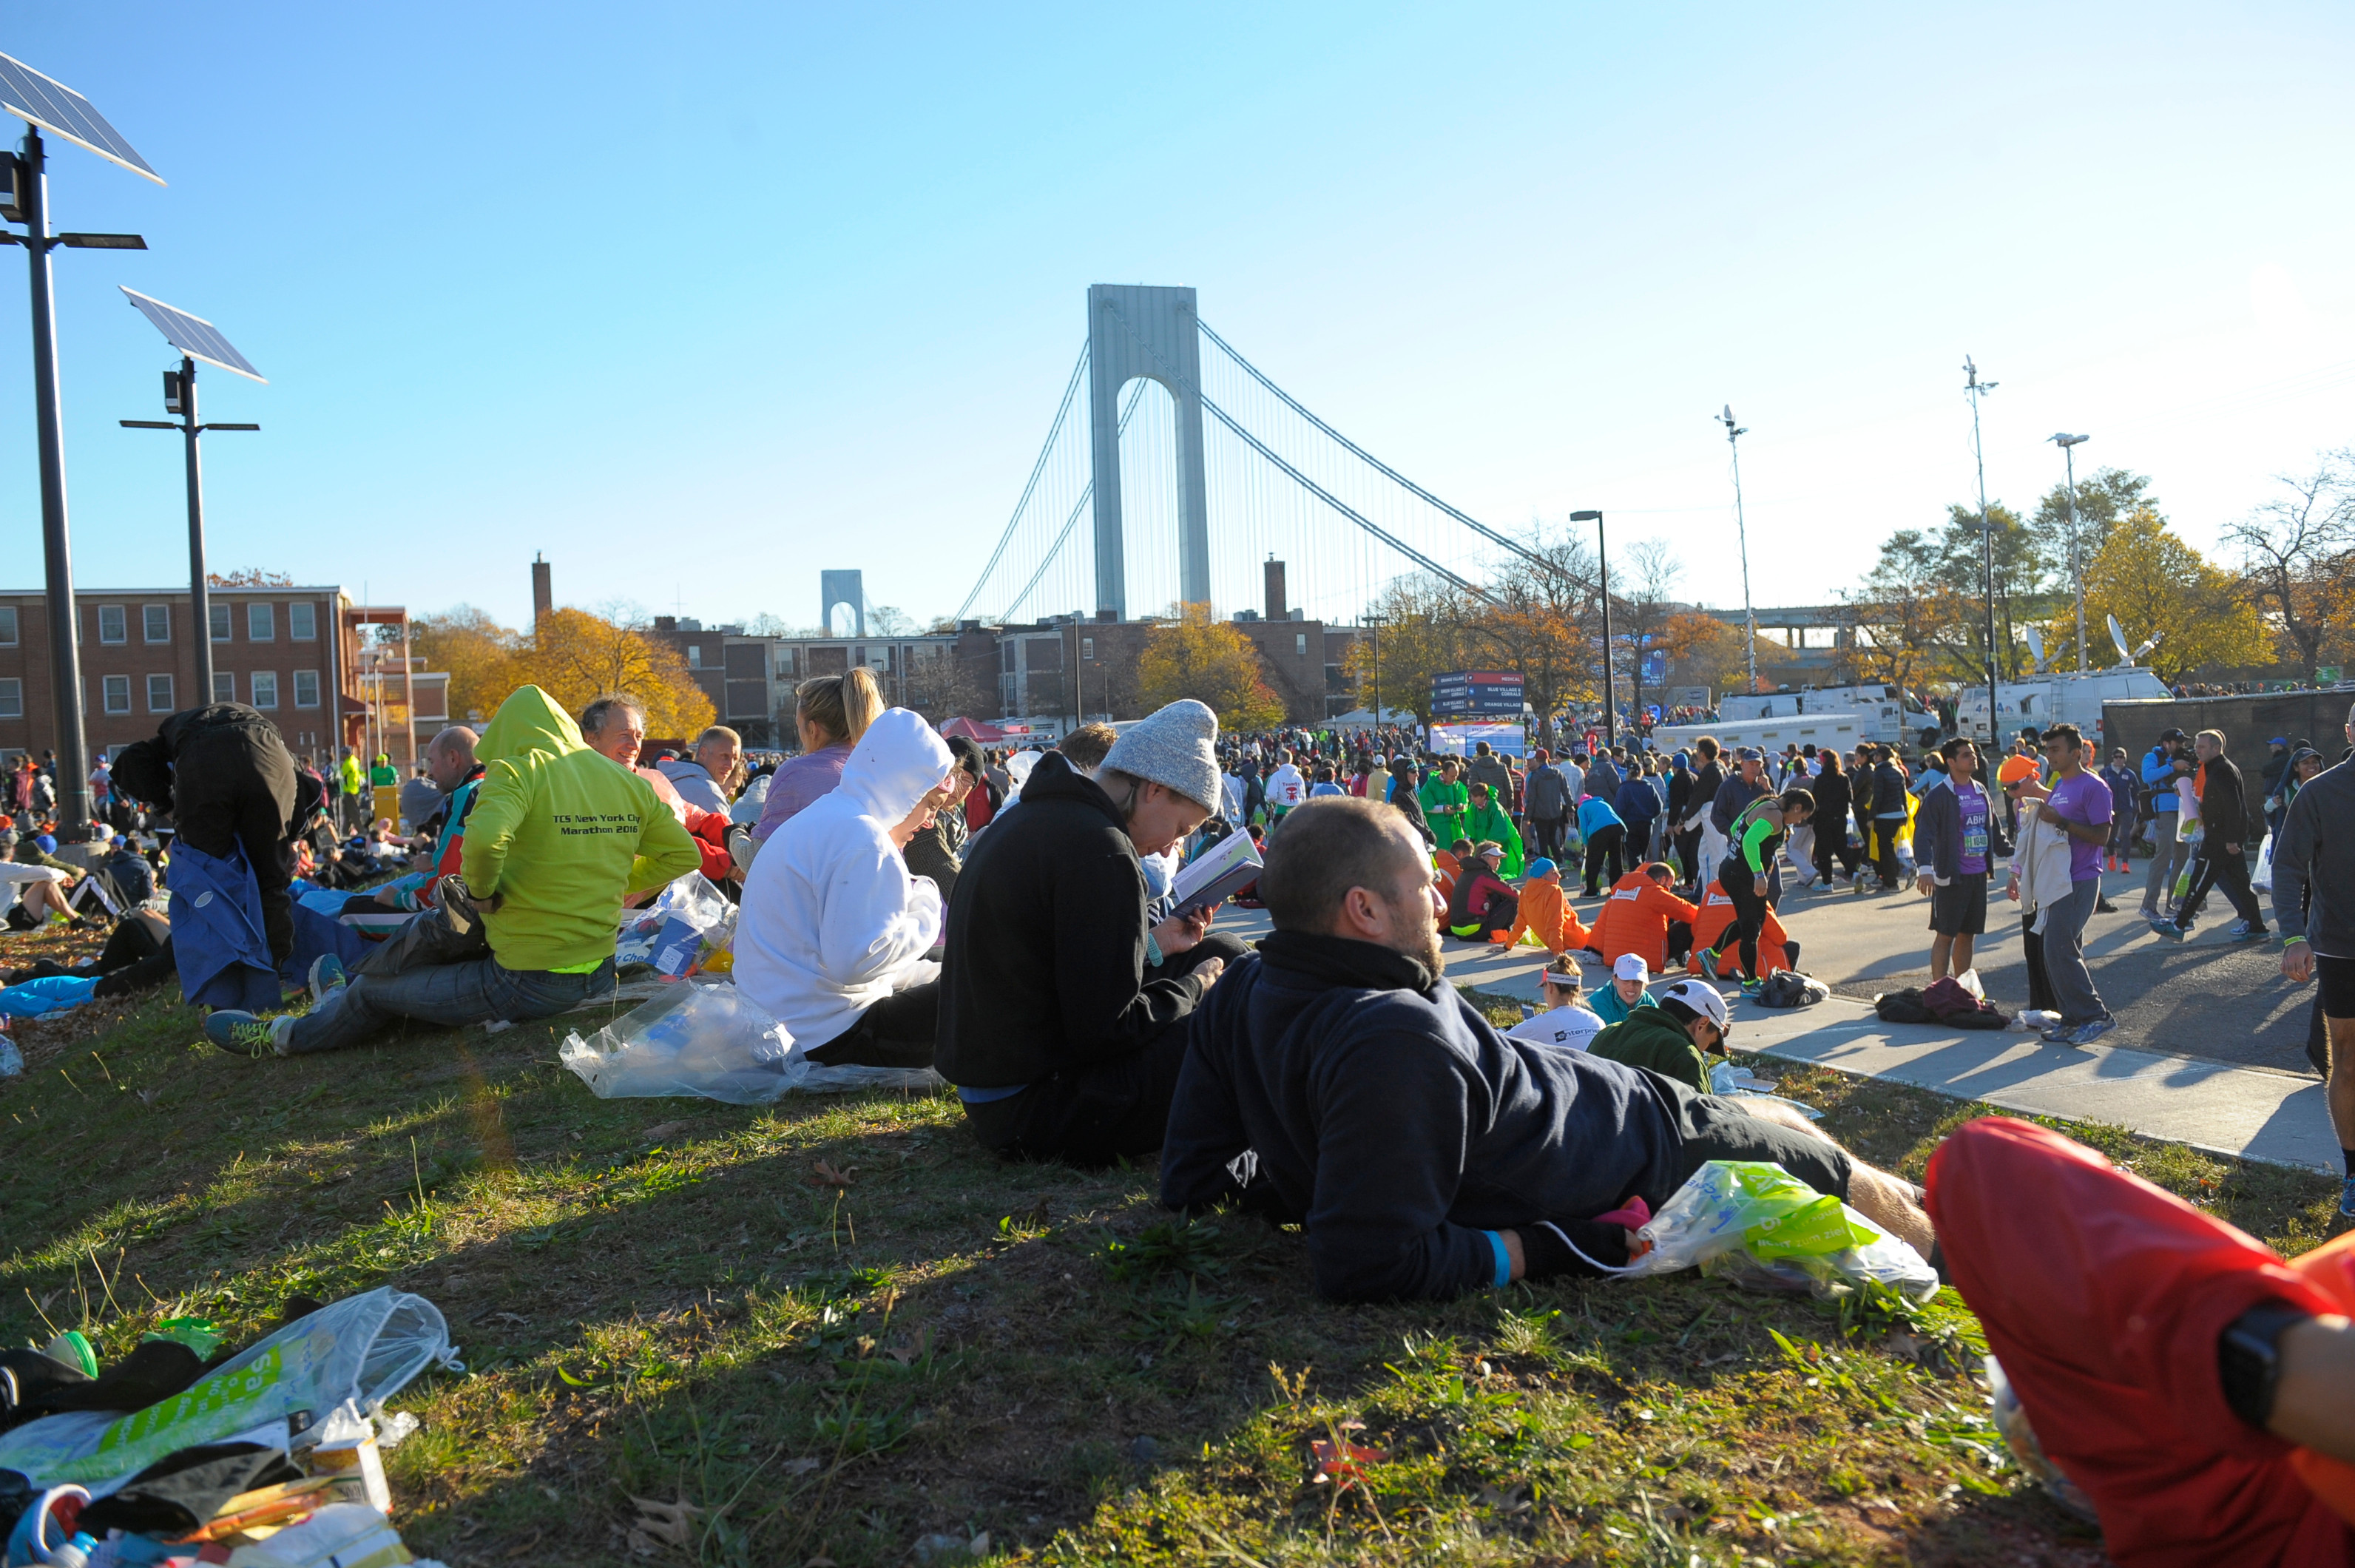 New York City Marathon runners sitting down and resting in the start area before their race begins